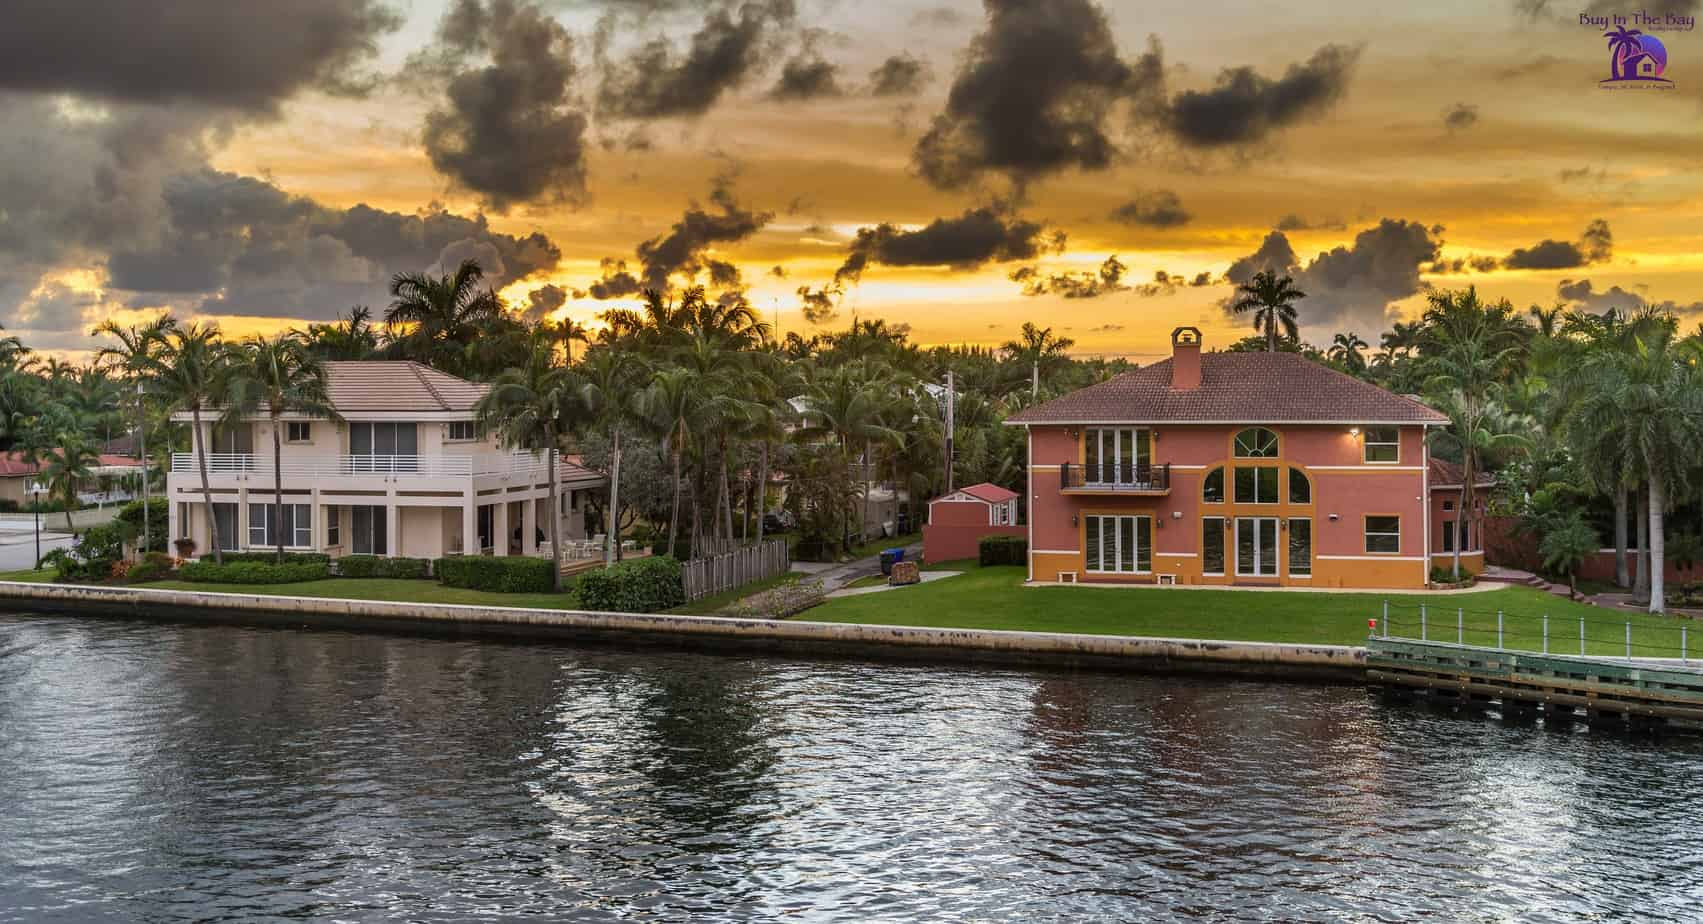 image of two waterfront homes with sunset in the background showing south tampa real estate